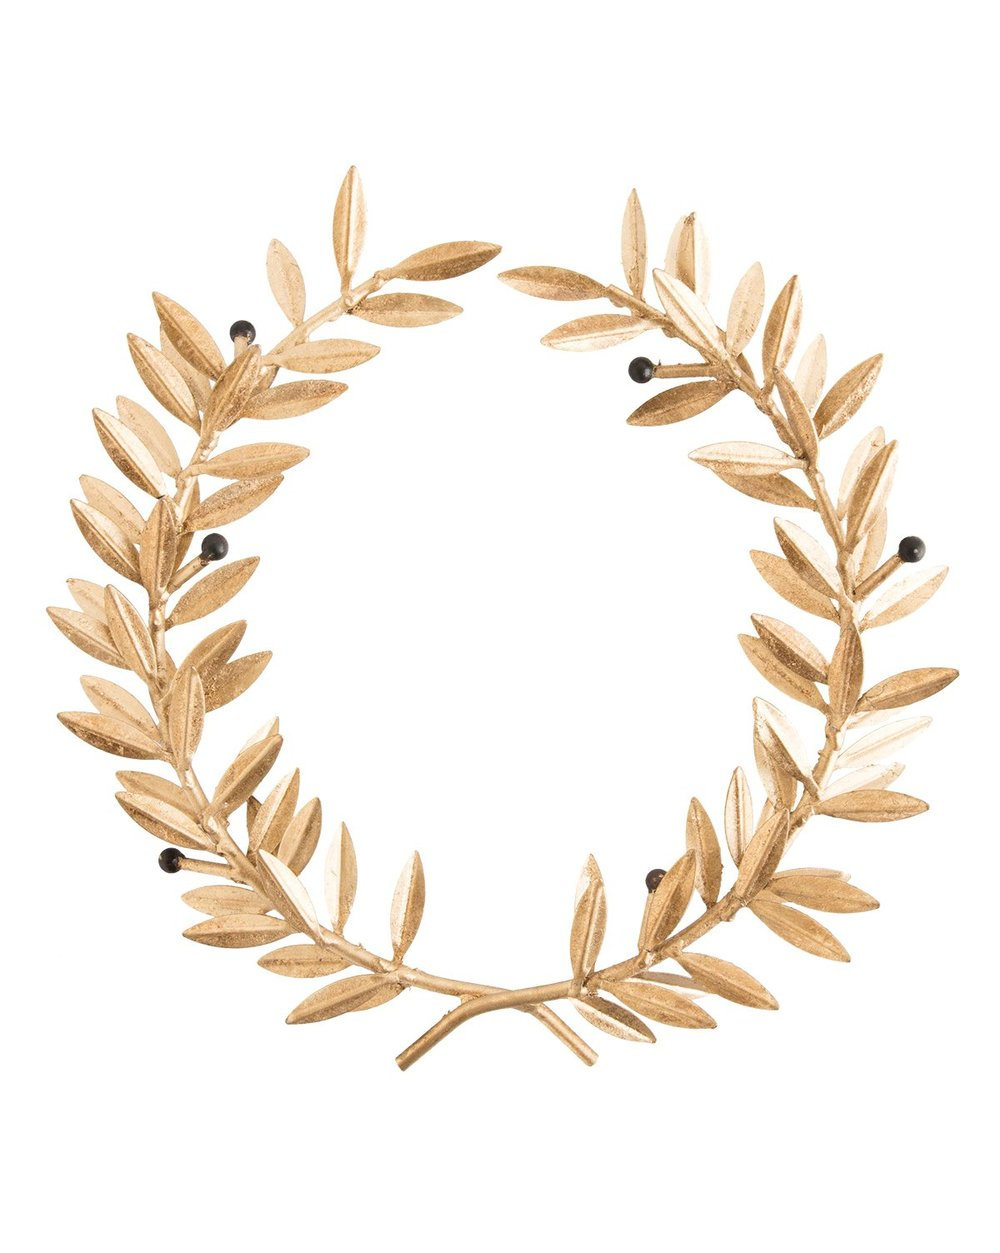 Olea_Wreath_Object_1 2.jpg